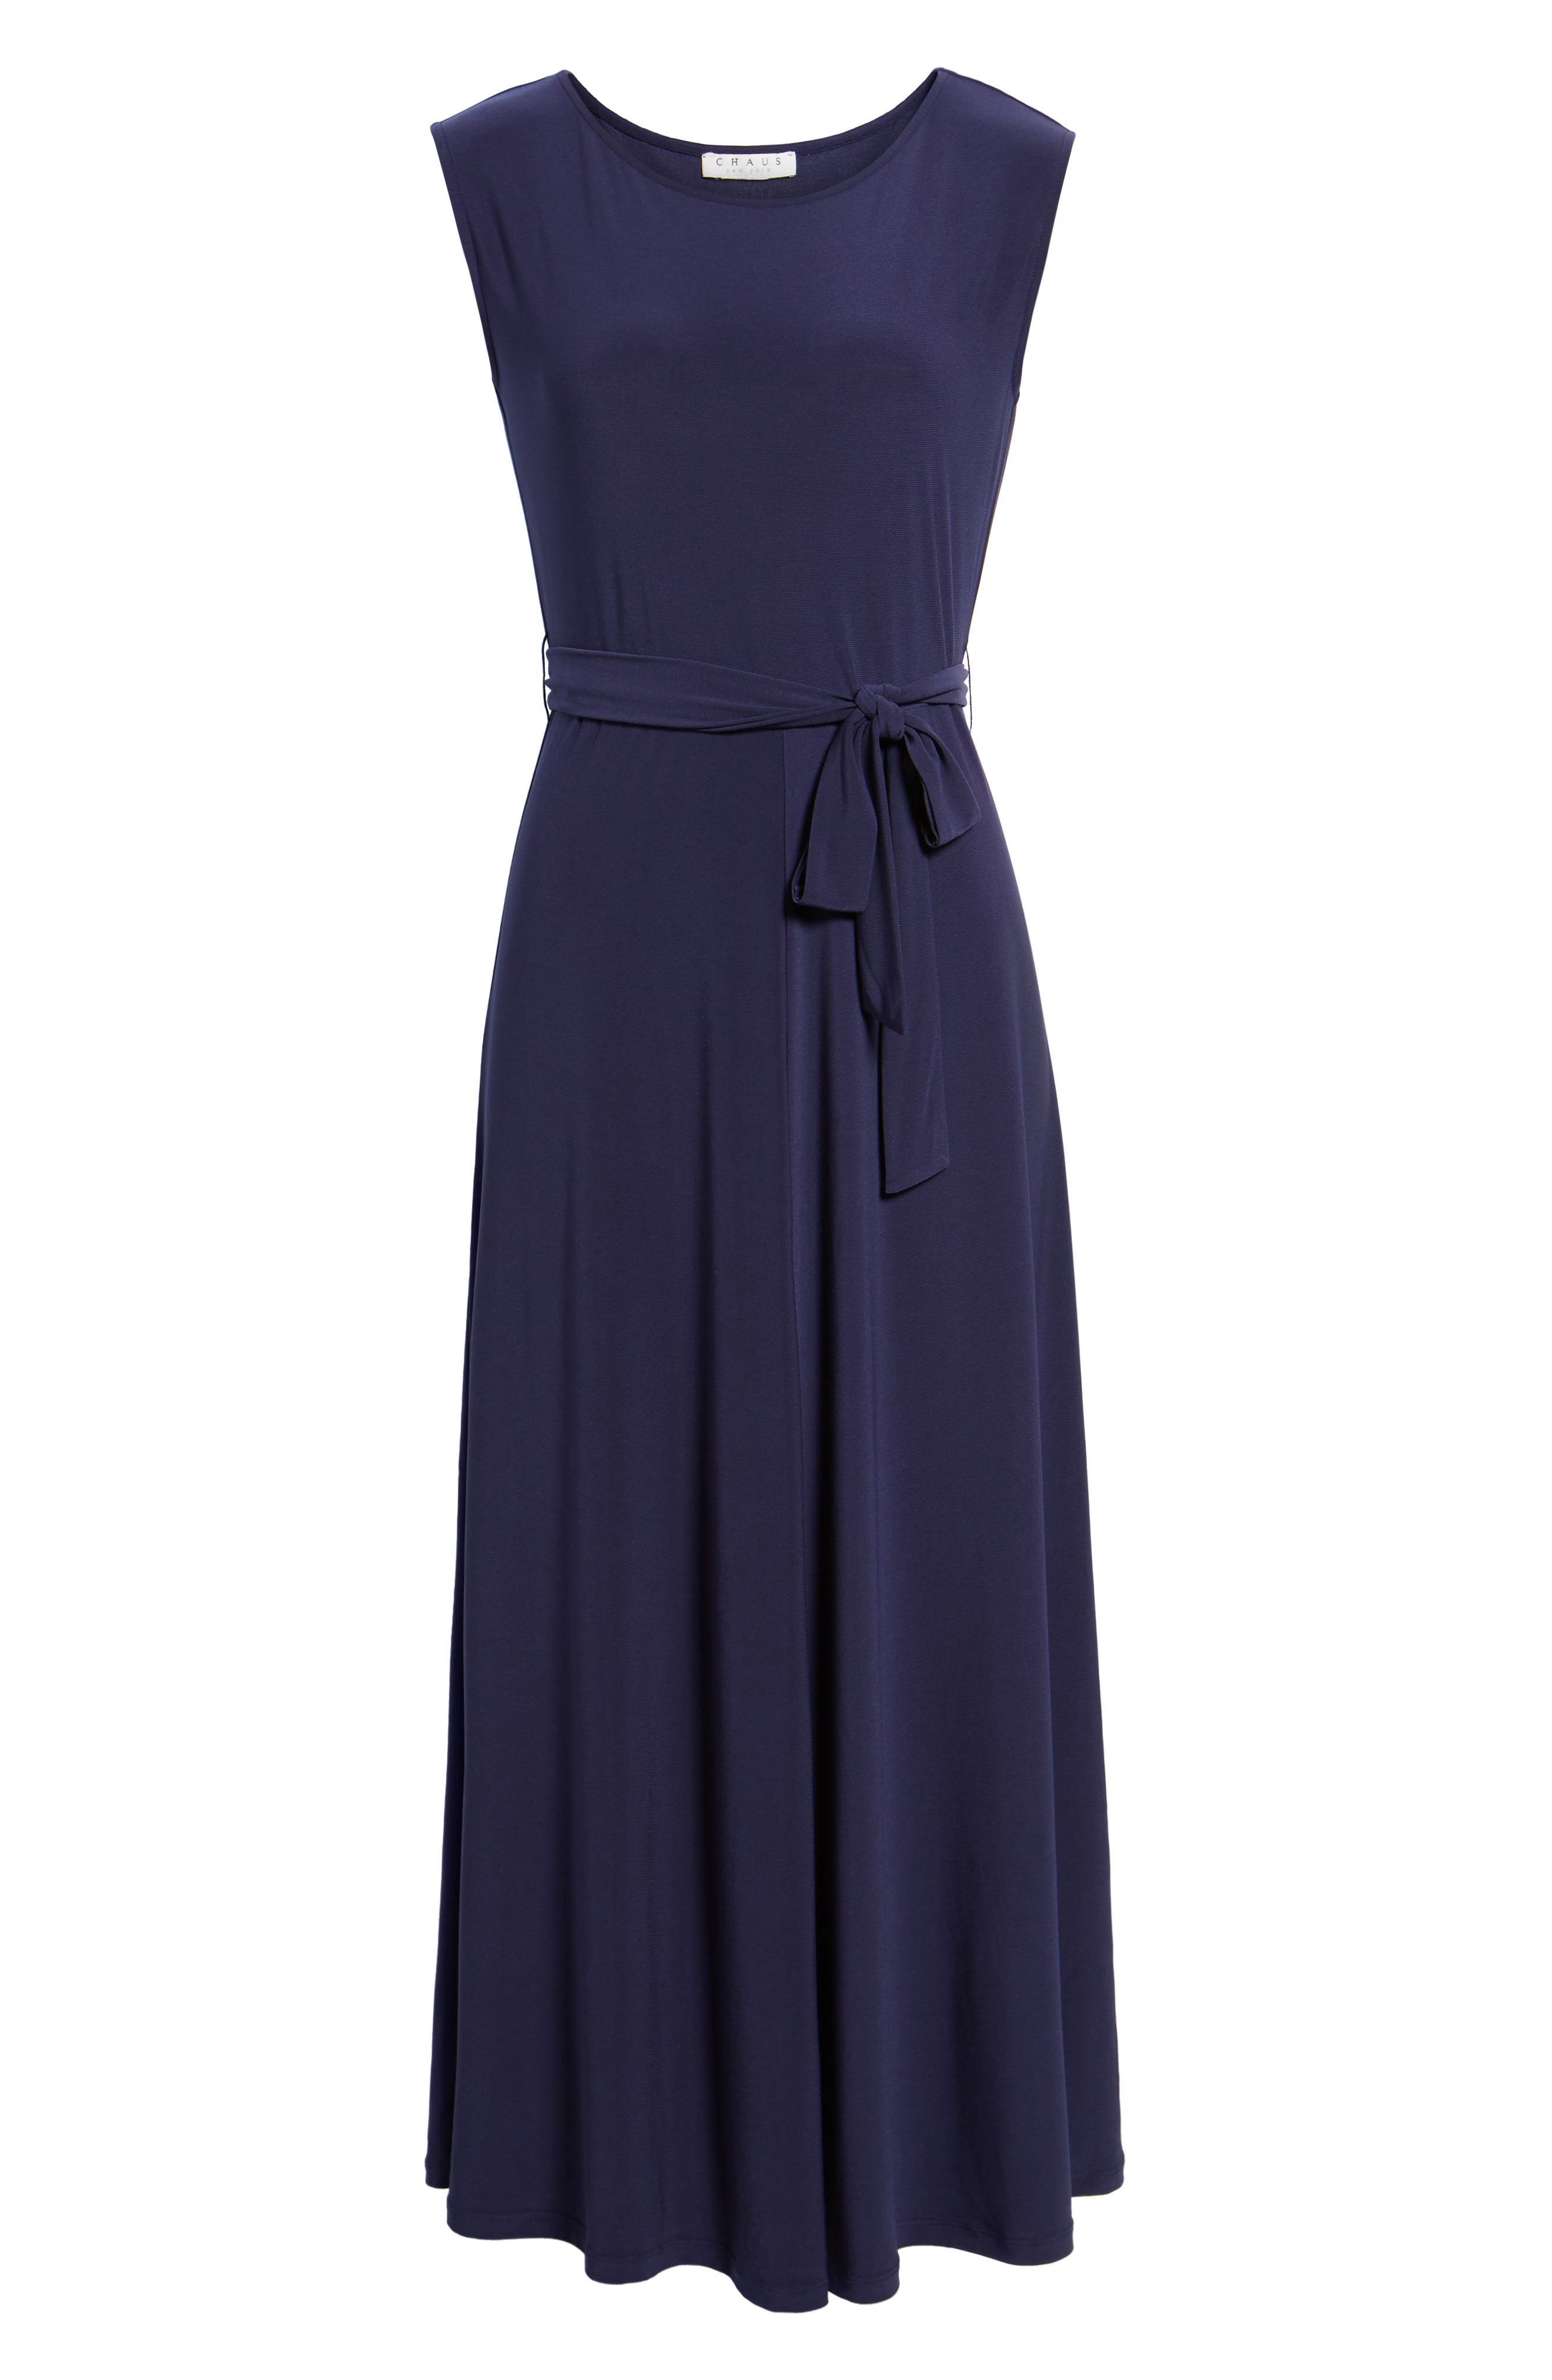 Cap Sleeve Tie Waist Maxi Dress,                             Alternate thumbnail 6, color,                             400